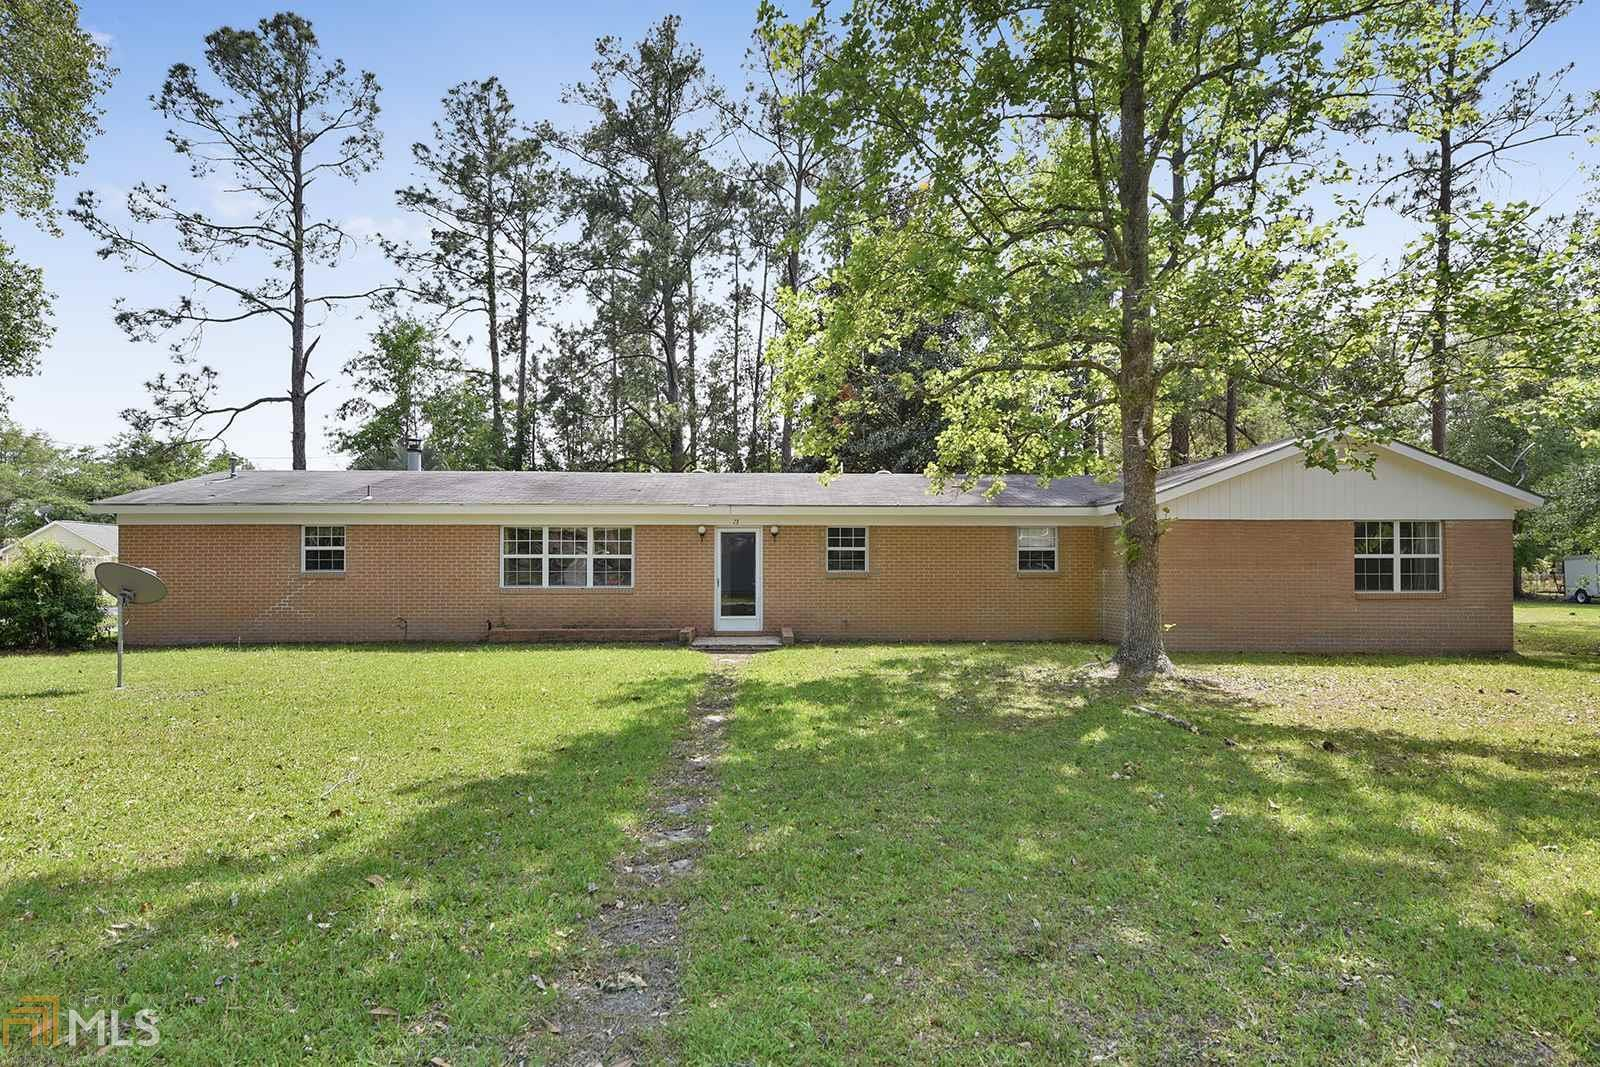 Local Real Estate Homes For Sale Folkston Ga Coldwell Banker